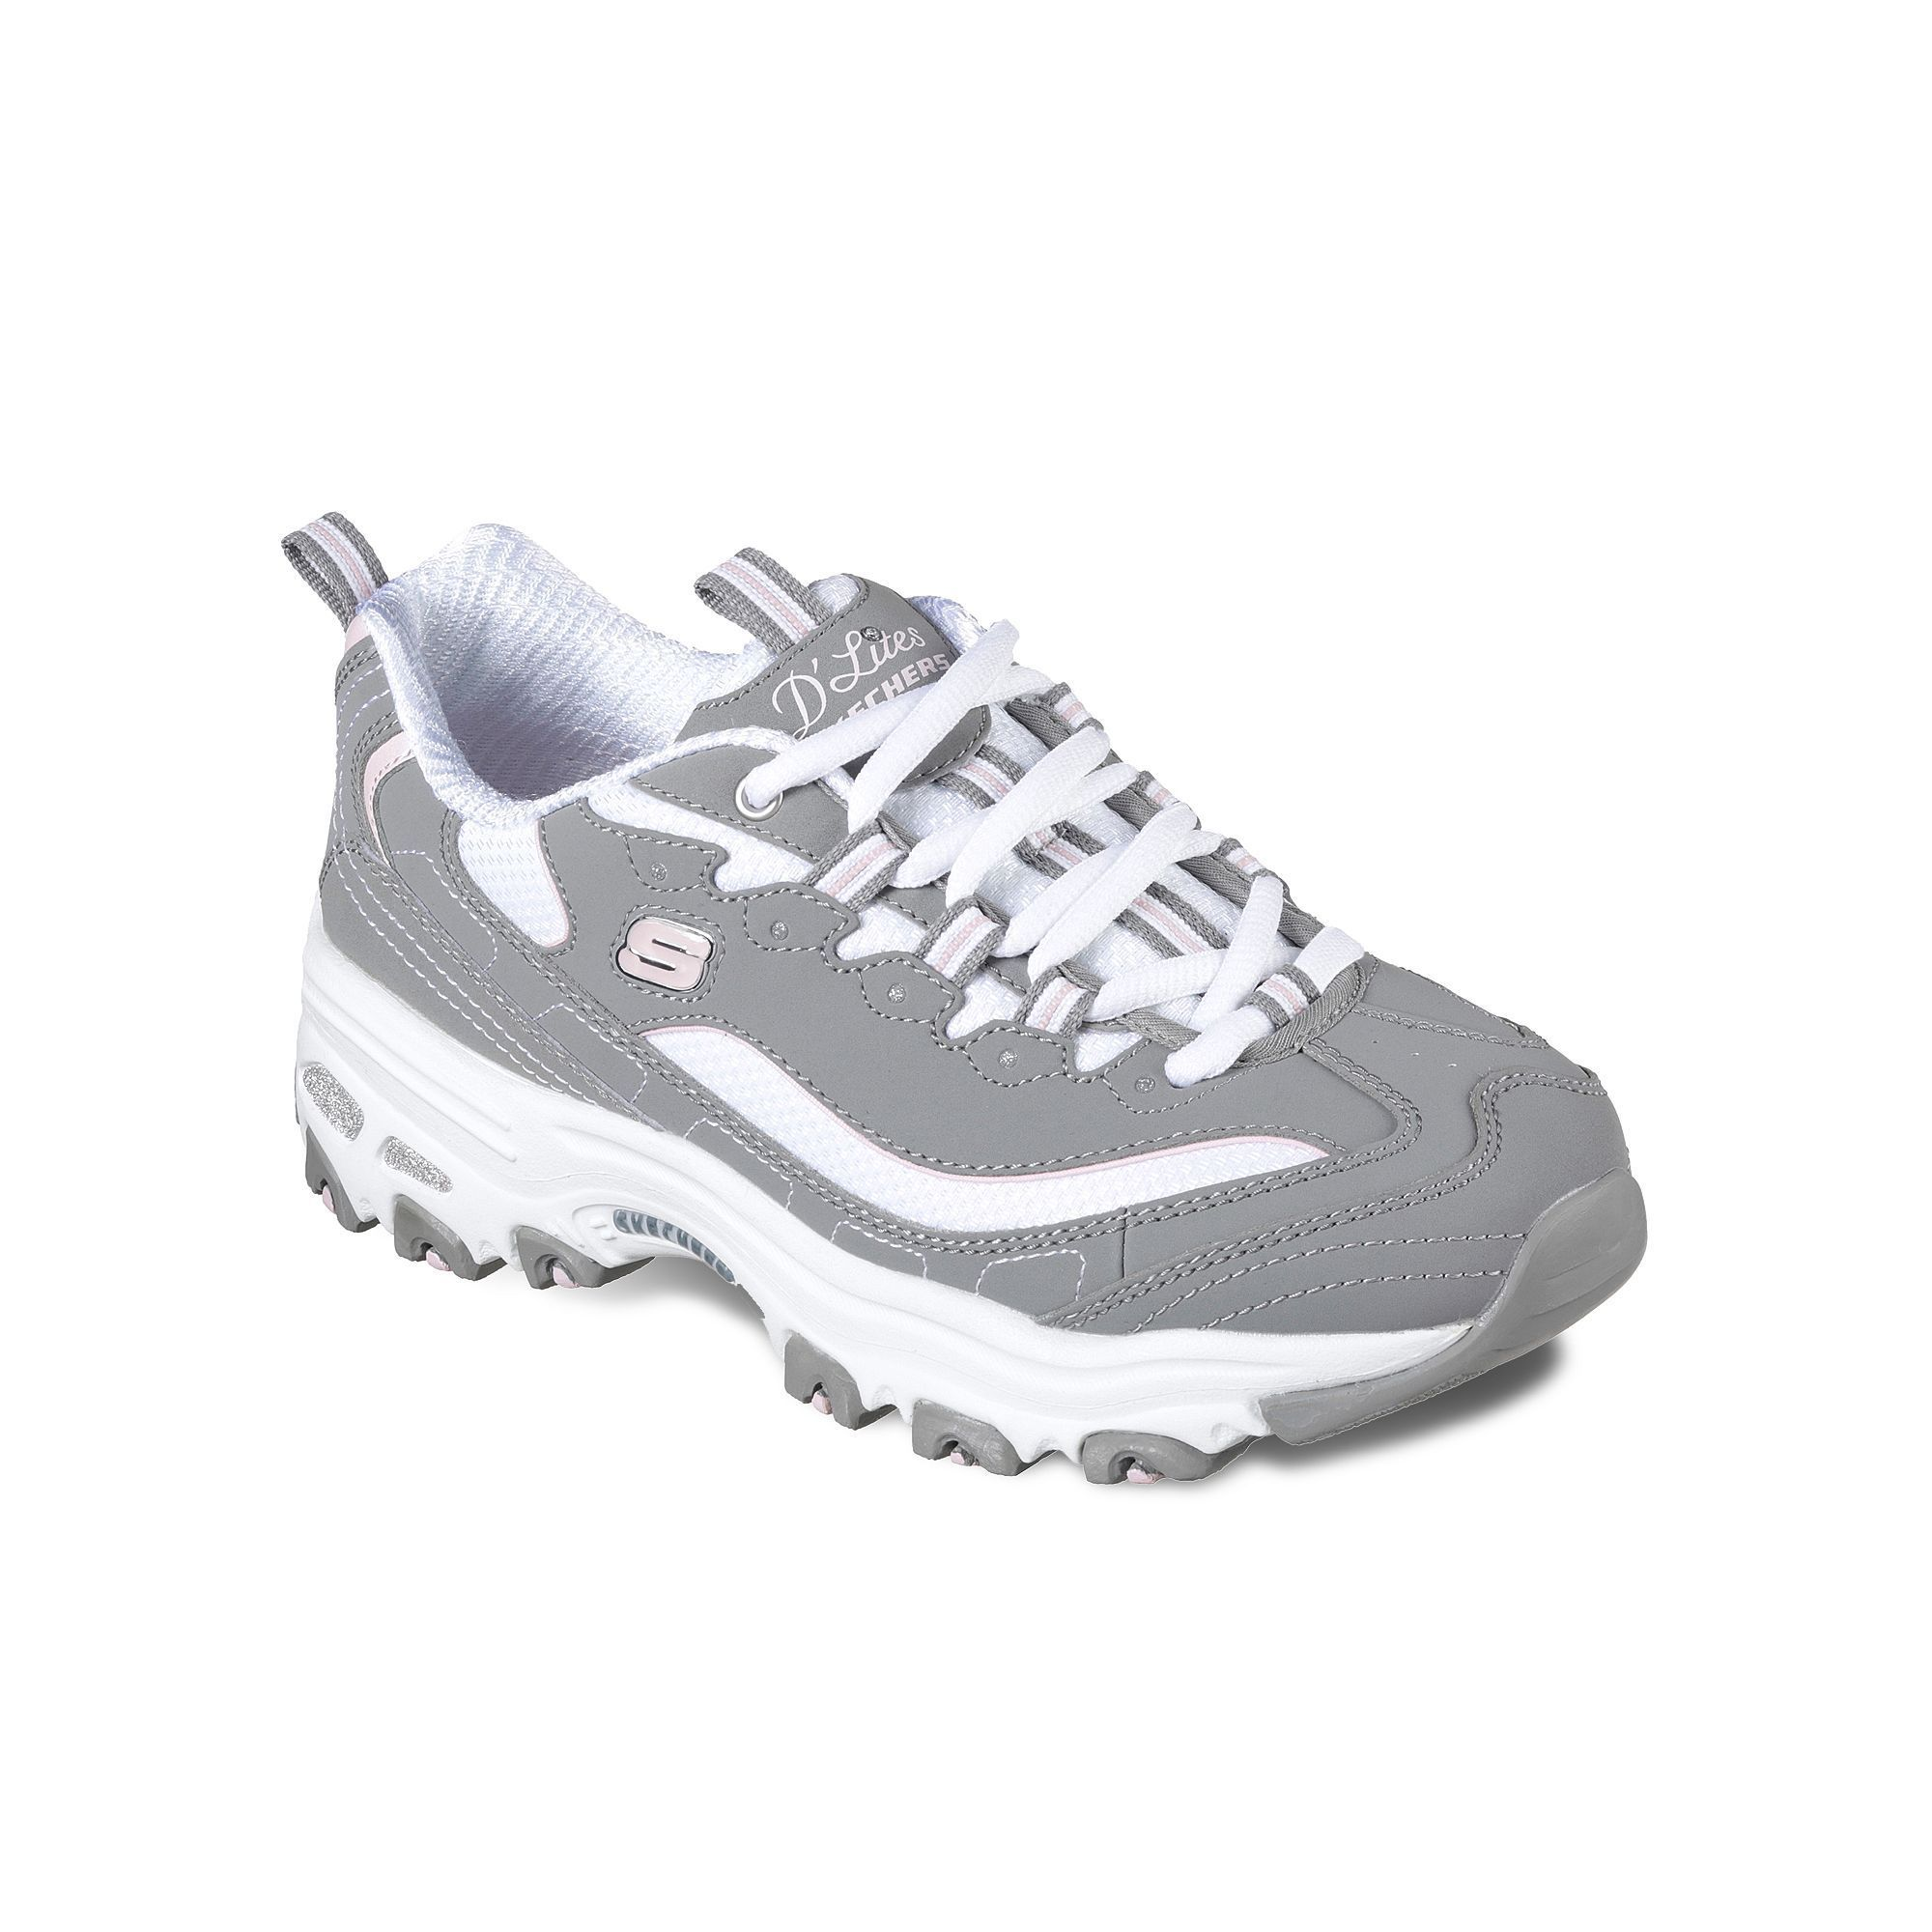 a413d3c2e49 Skechers D Lites Biggest Fan Women s Athletic Shoes